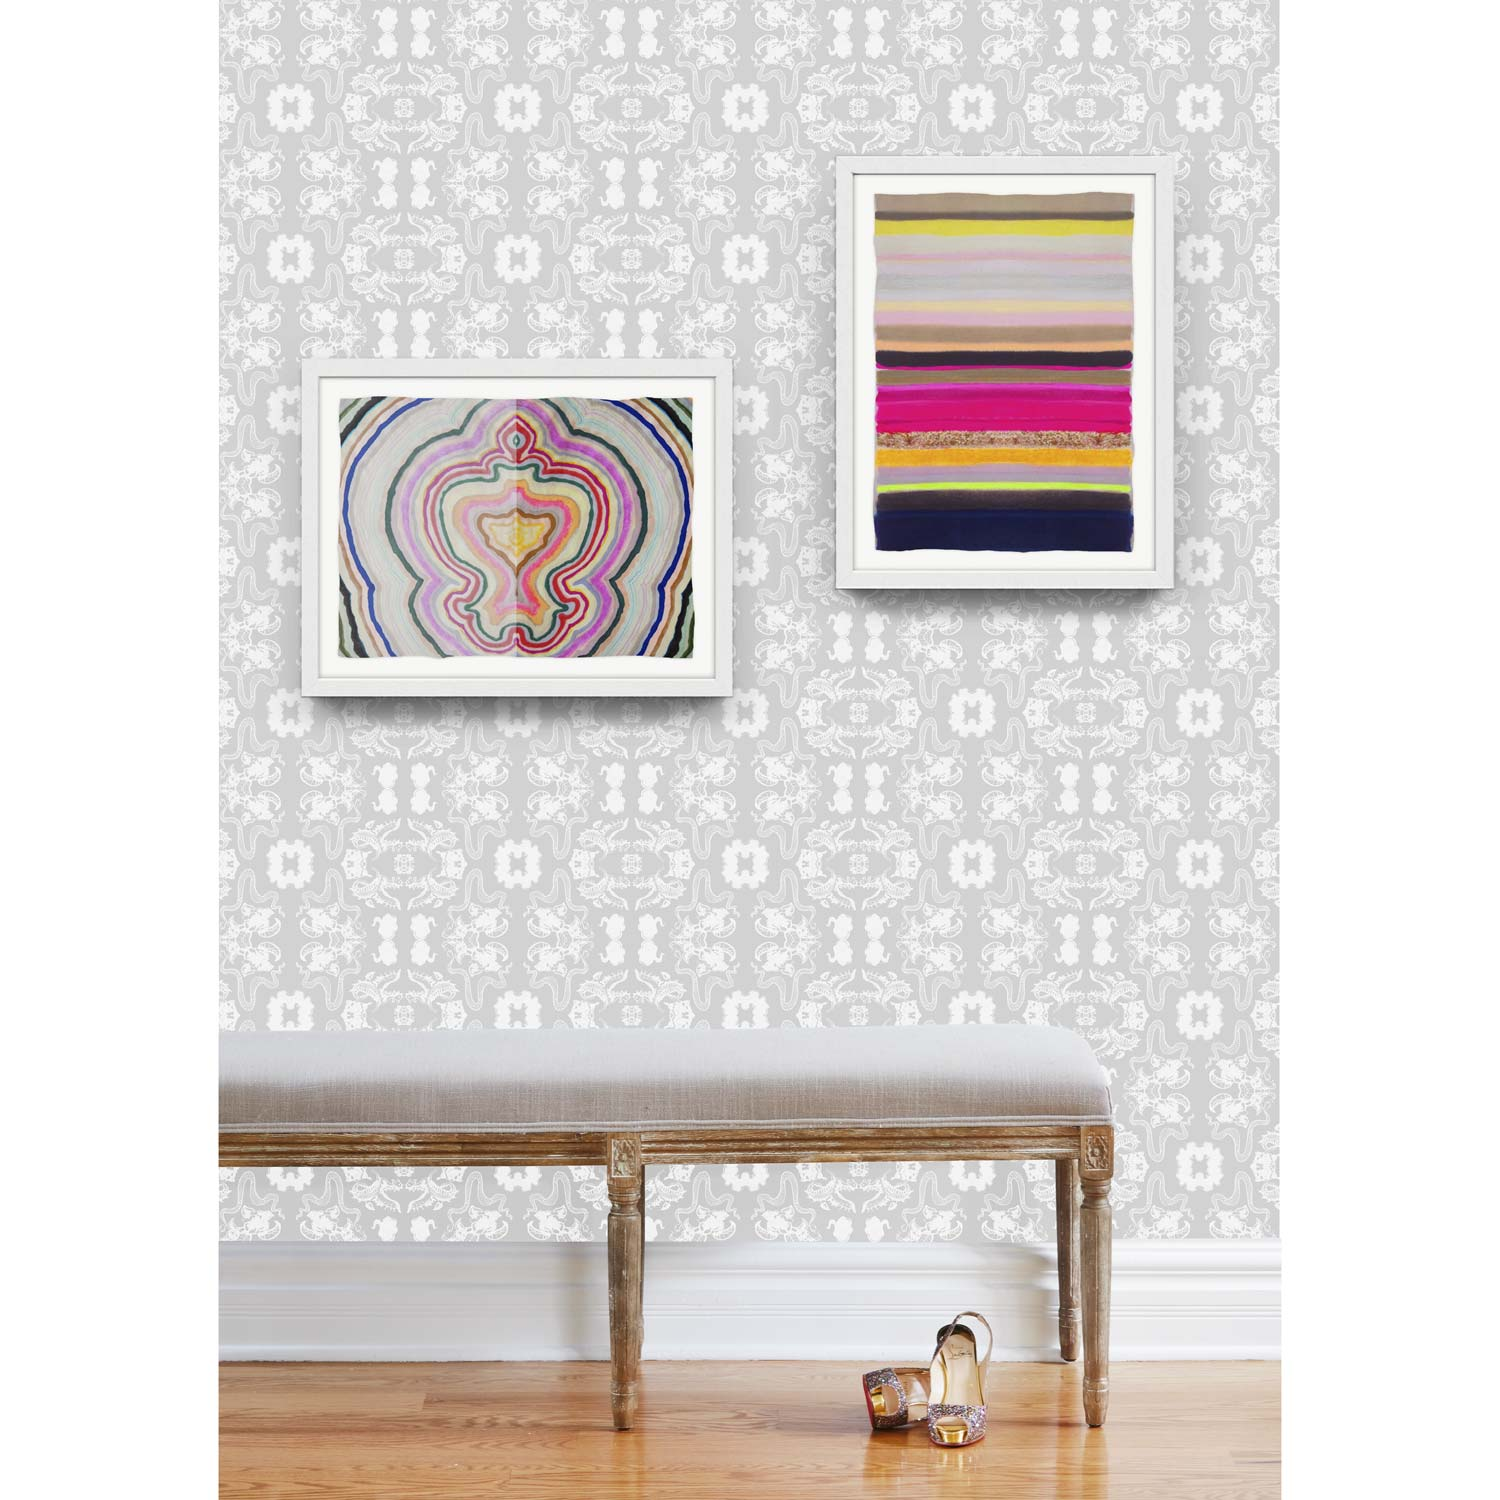 NEUTRAL COLOR + BOLD GRAPHICS - WHY NOT LIVE IN A DREAM WORLD WALLPAPER IN SILVERBEAUTY INSIDE #2 PRINTSTRIPES 35 PRINT